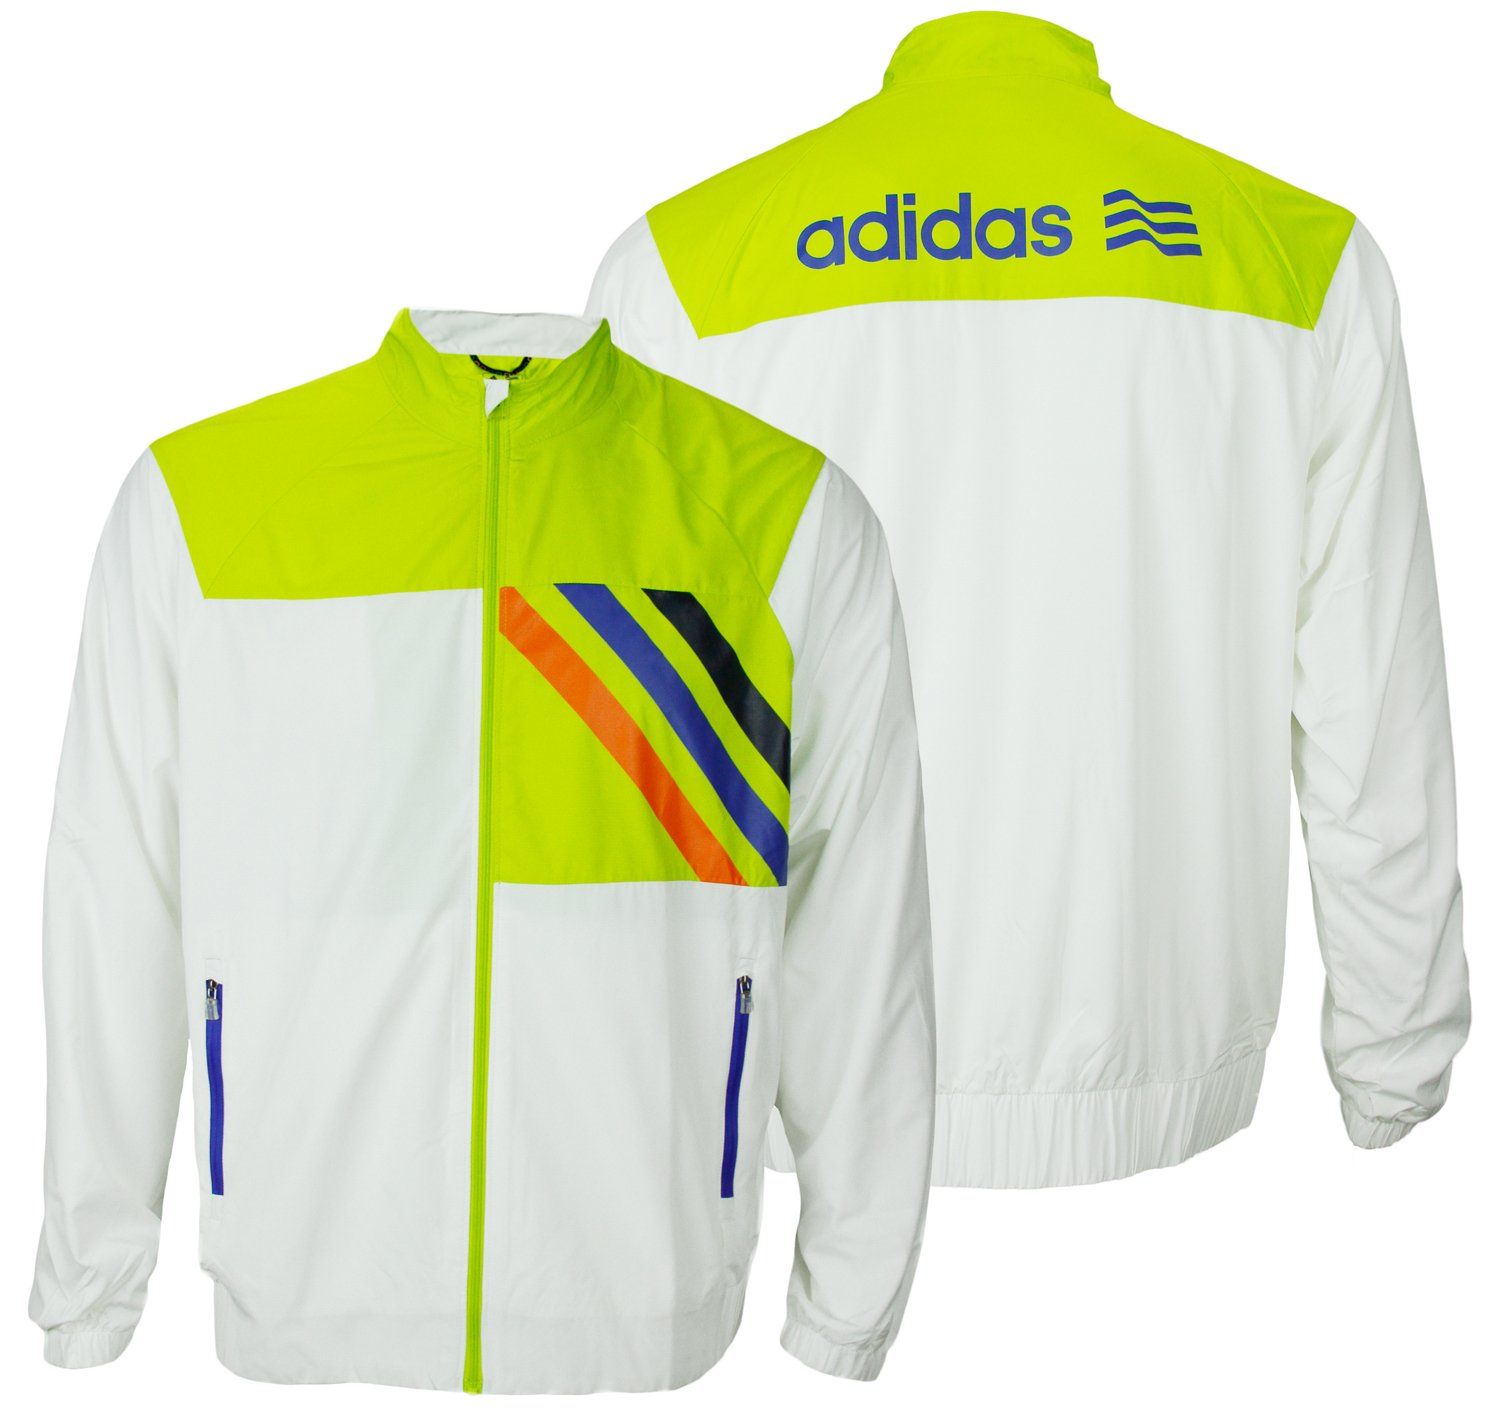 Adidas Front Pocket Woven Lined Jacket (Medium, White/Limeade/Navy/Royal)